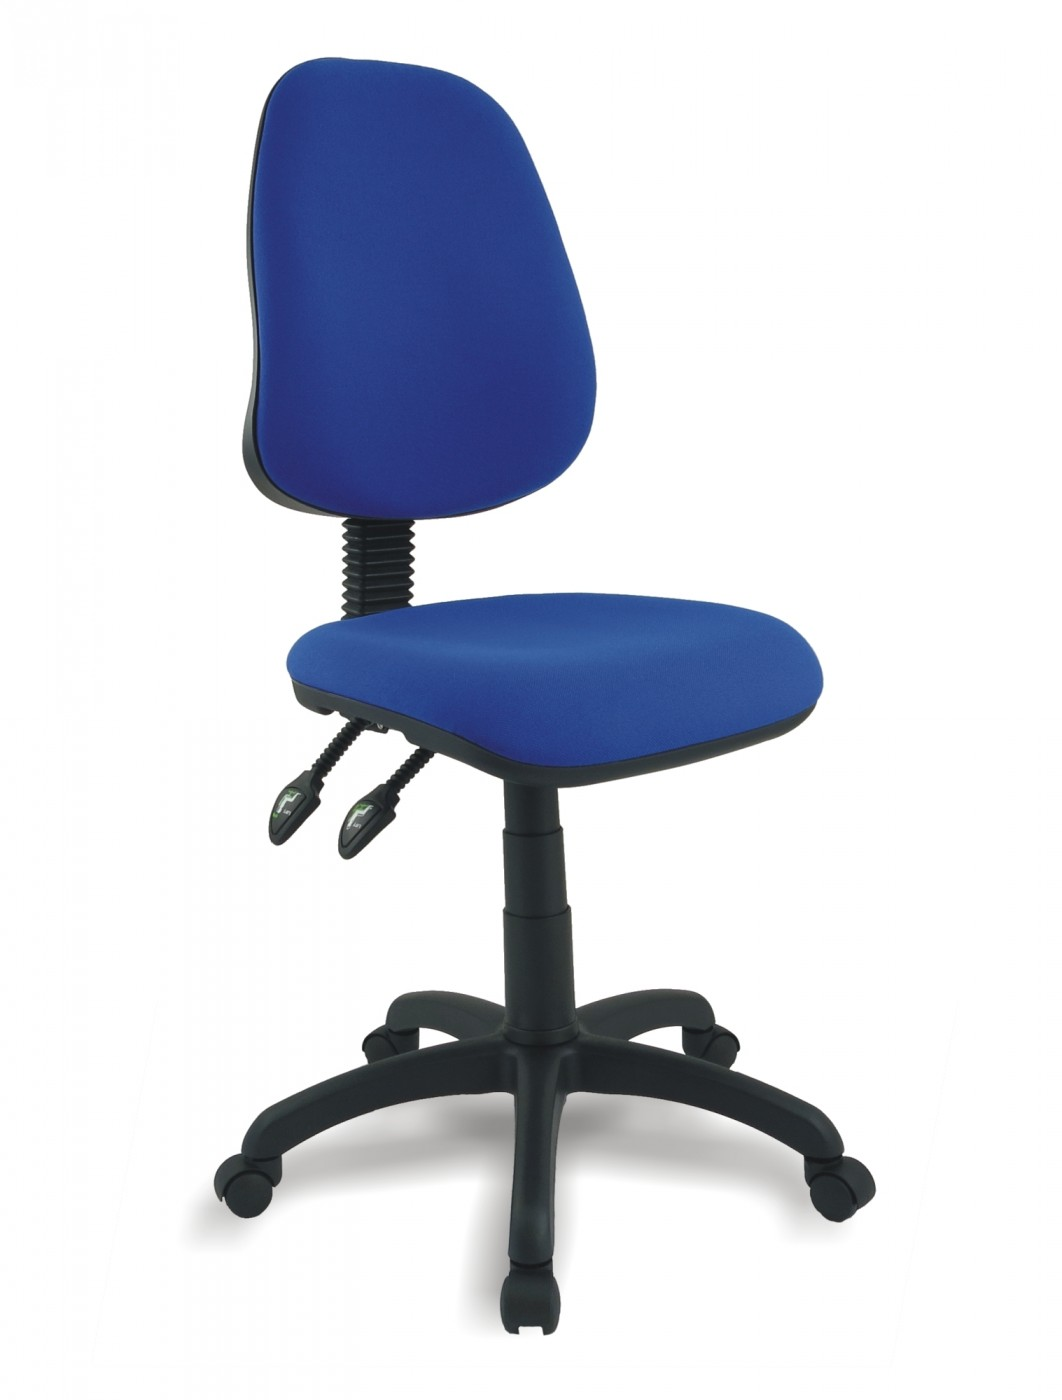 java 300 operators chair bcf p606 121 office furniture